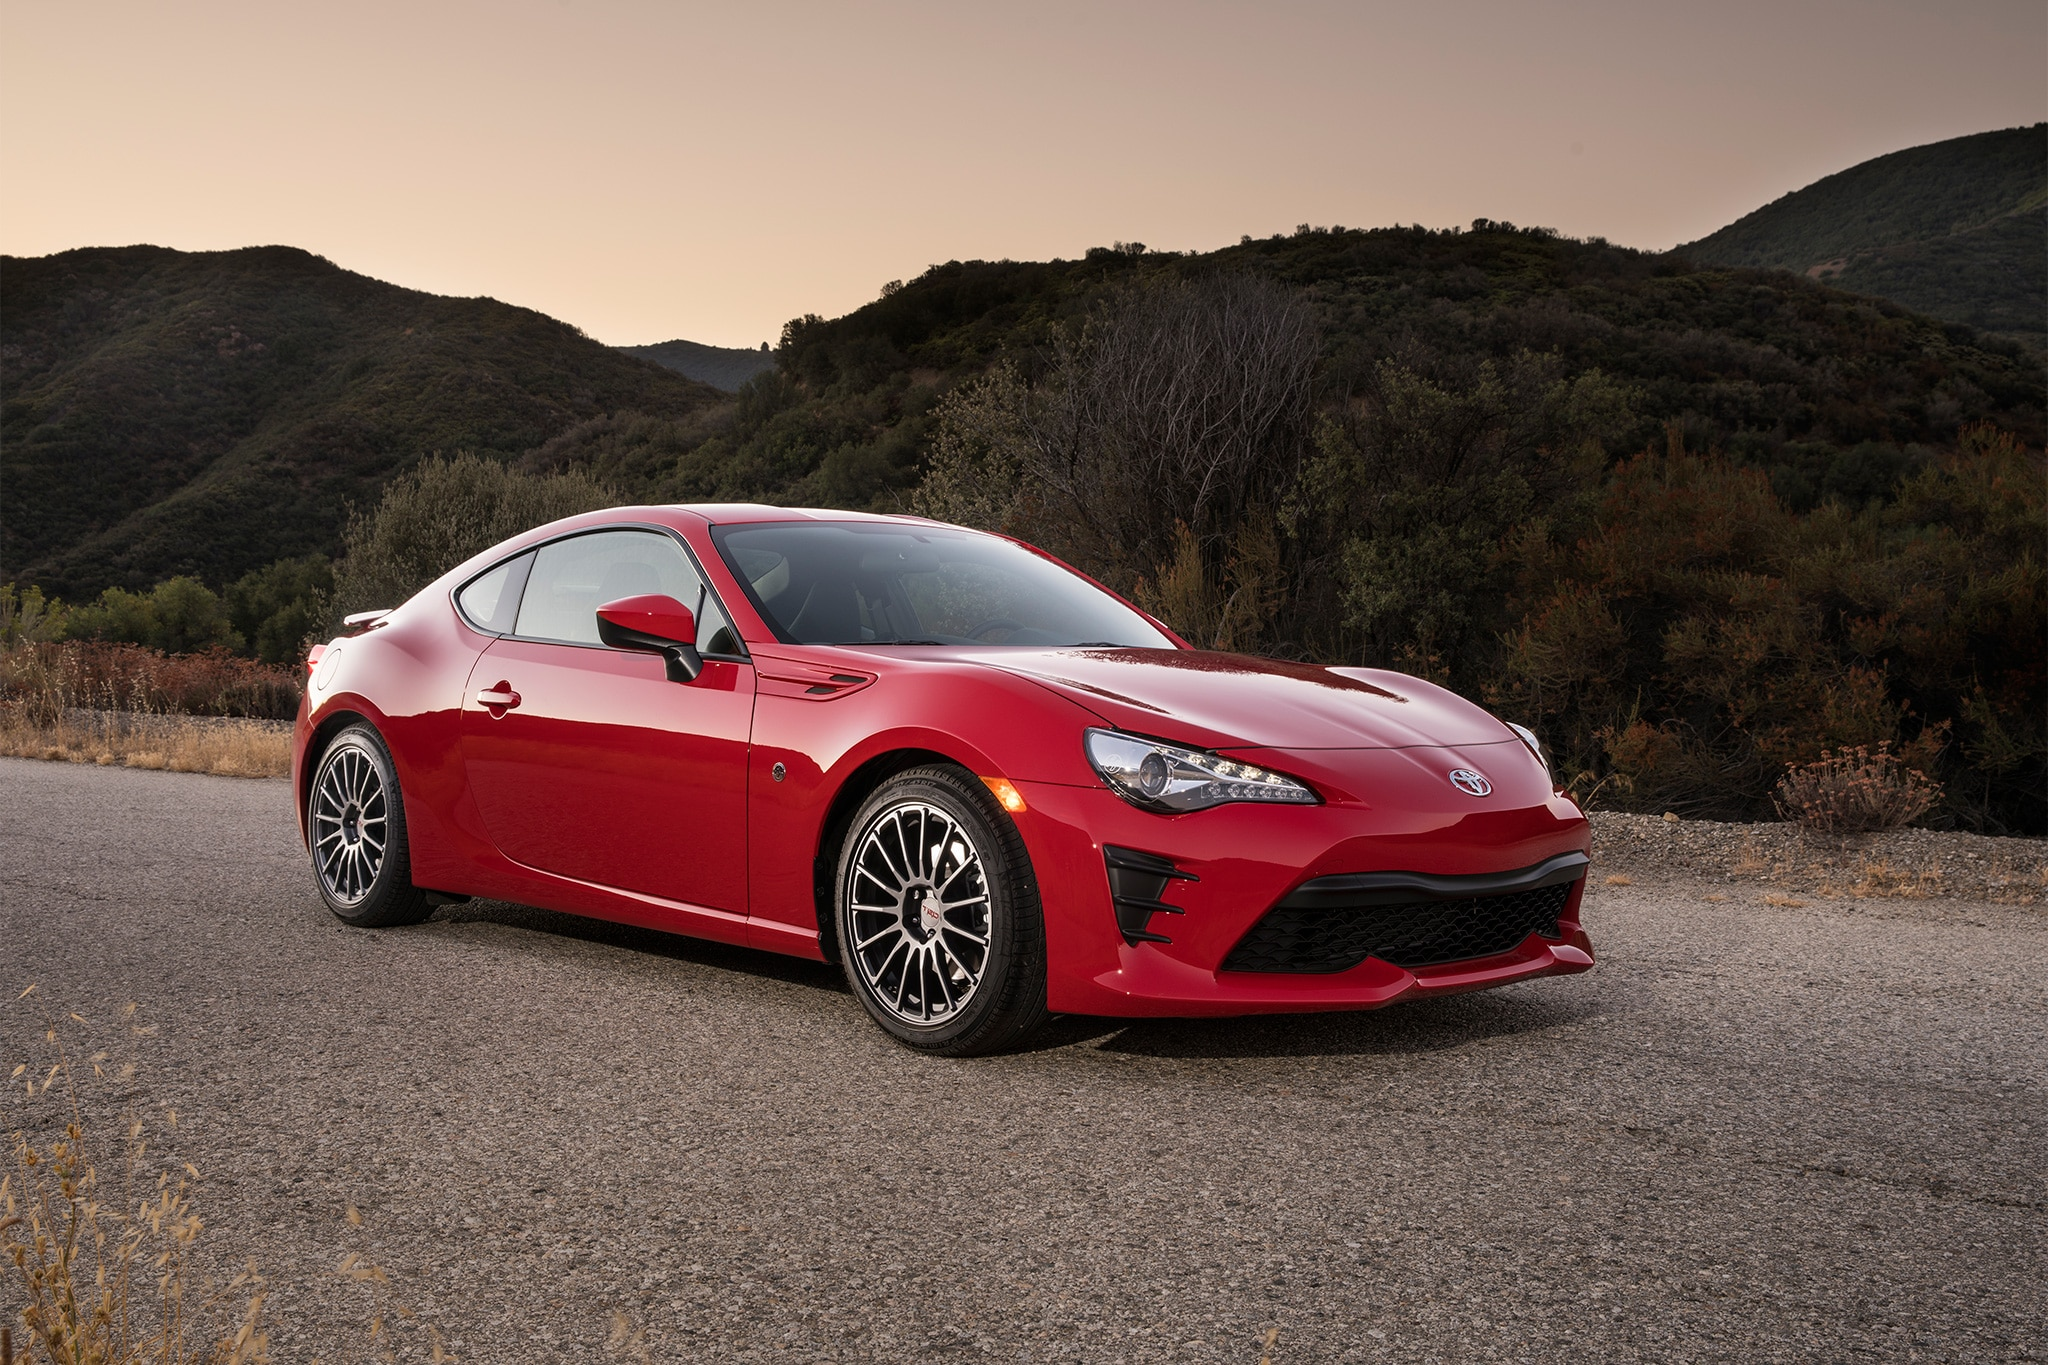 2017 Toyota 86 front three quarter 05